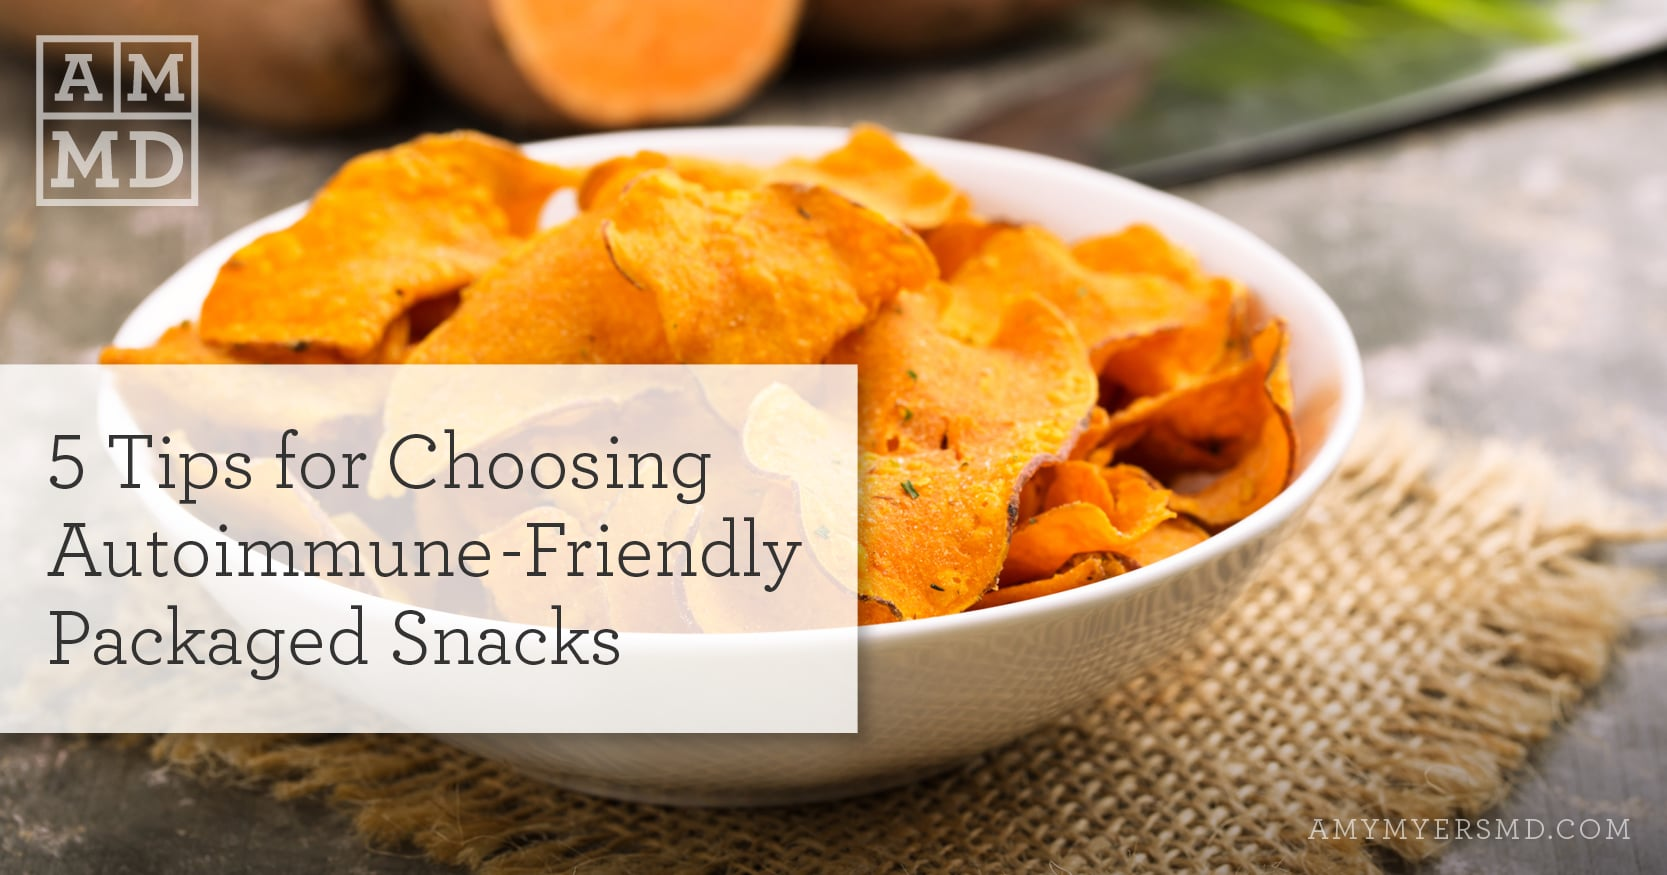 autoimmune-friendly snacks